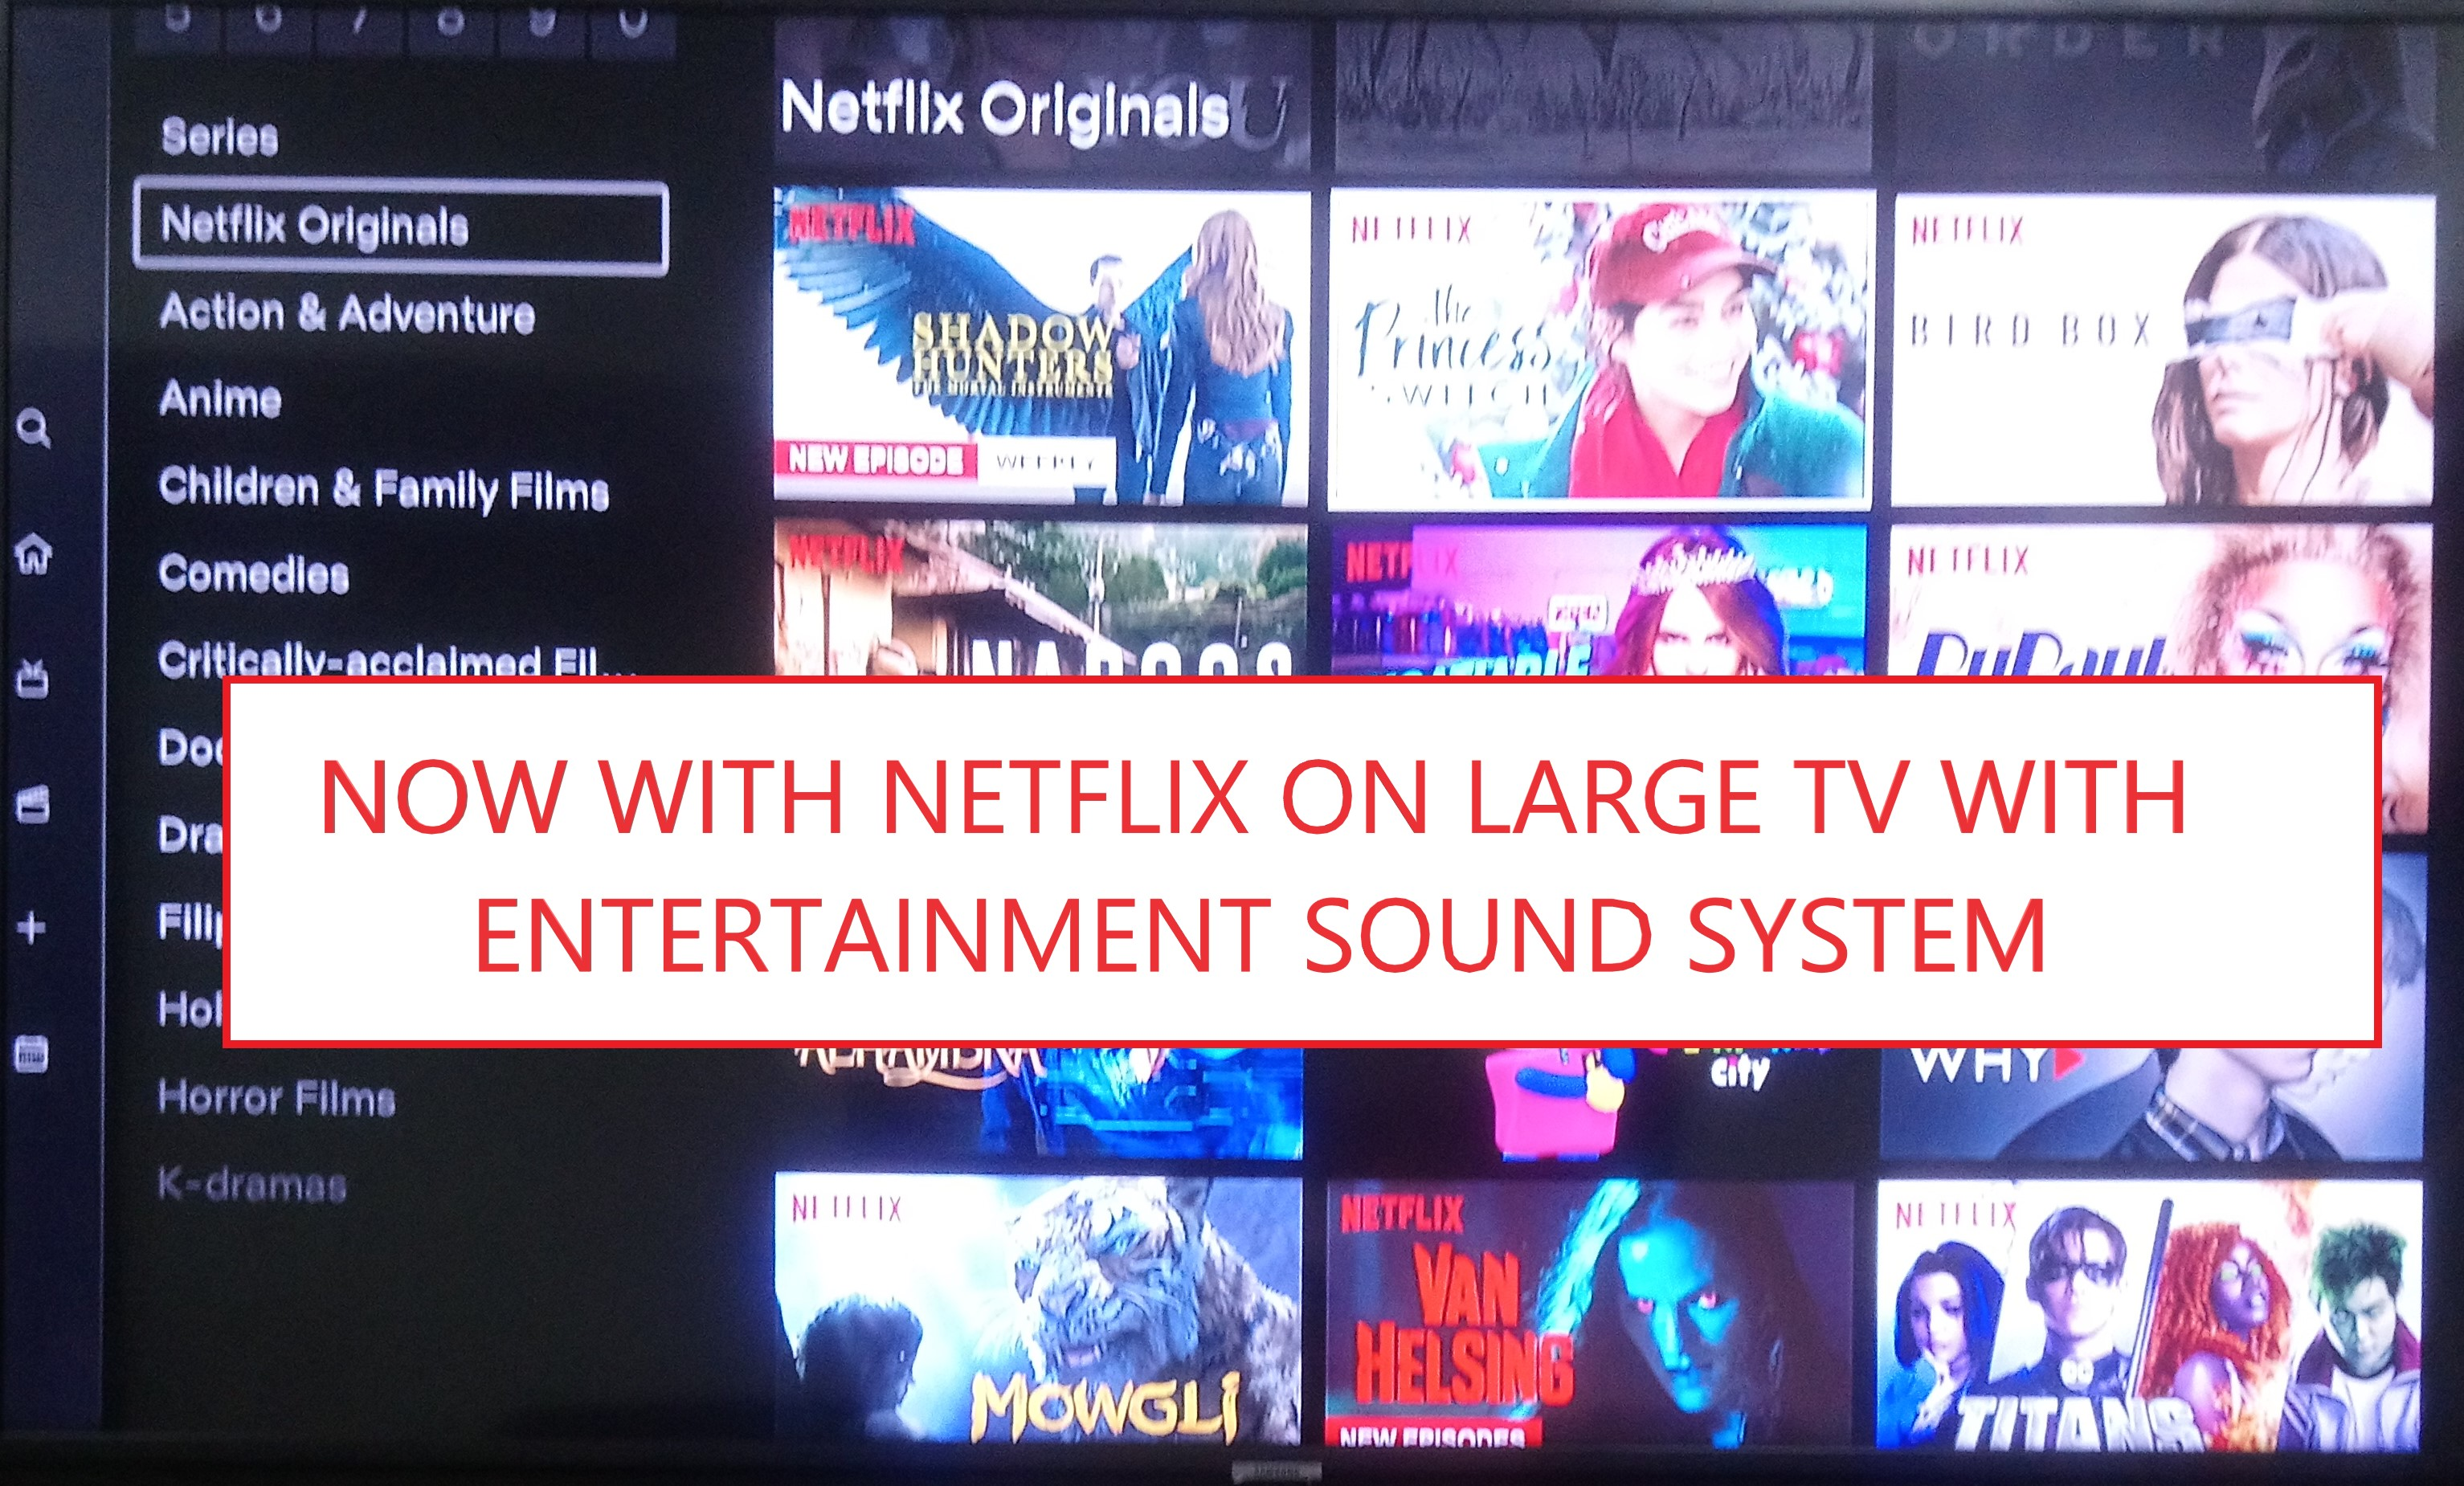 With a Netflix Account PRE_LOADED